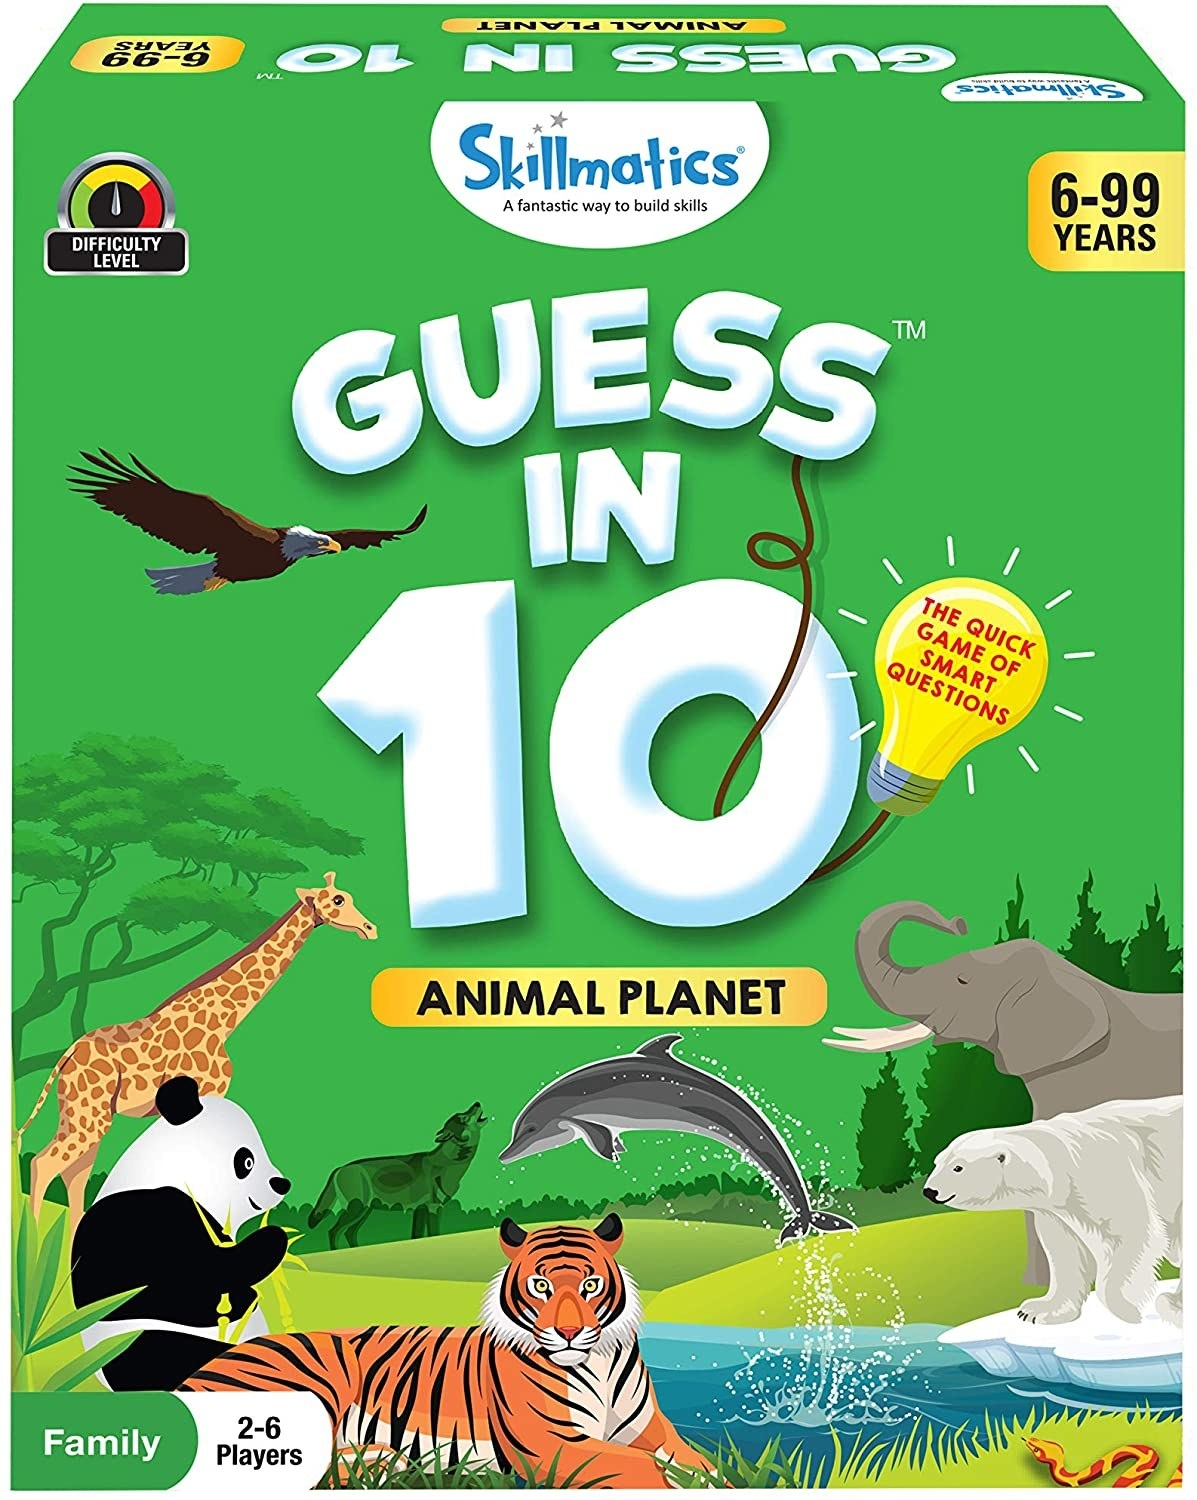 The animal planet card game